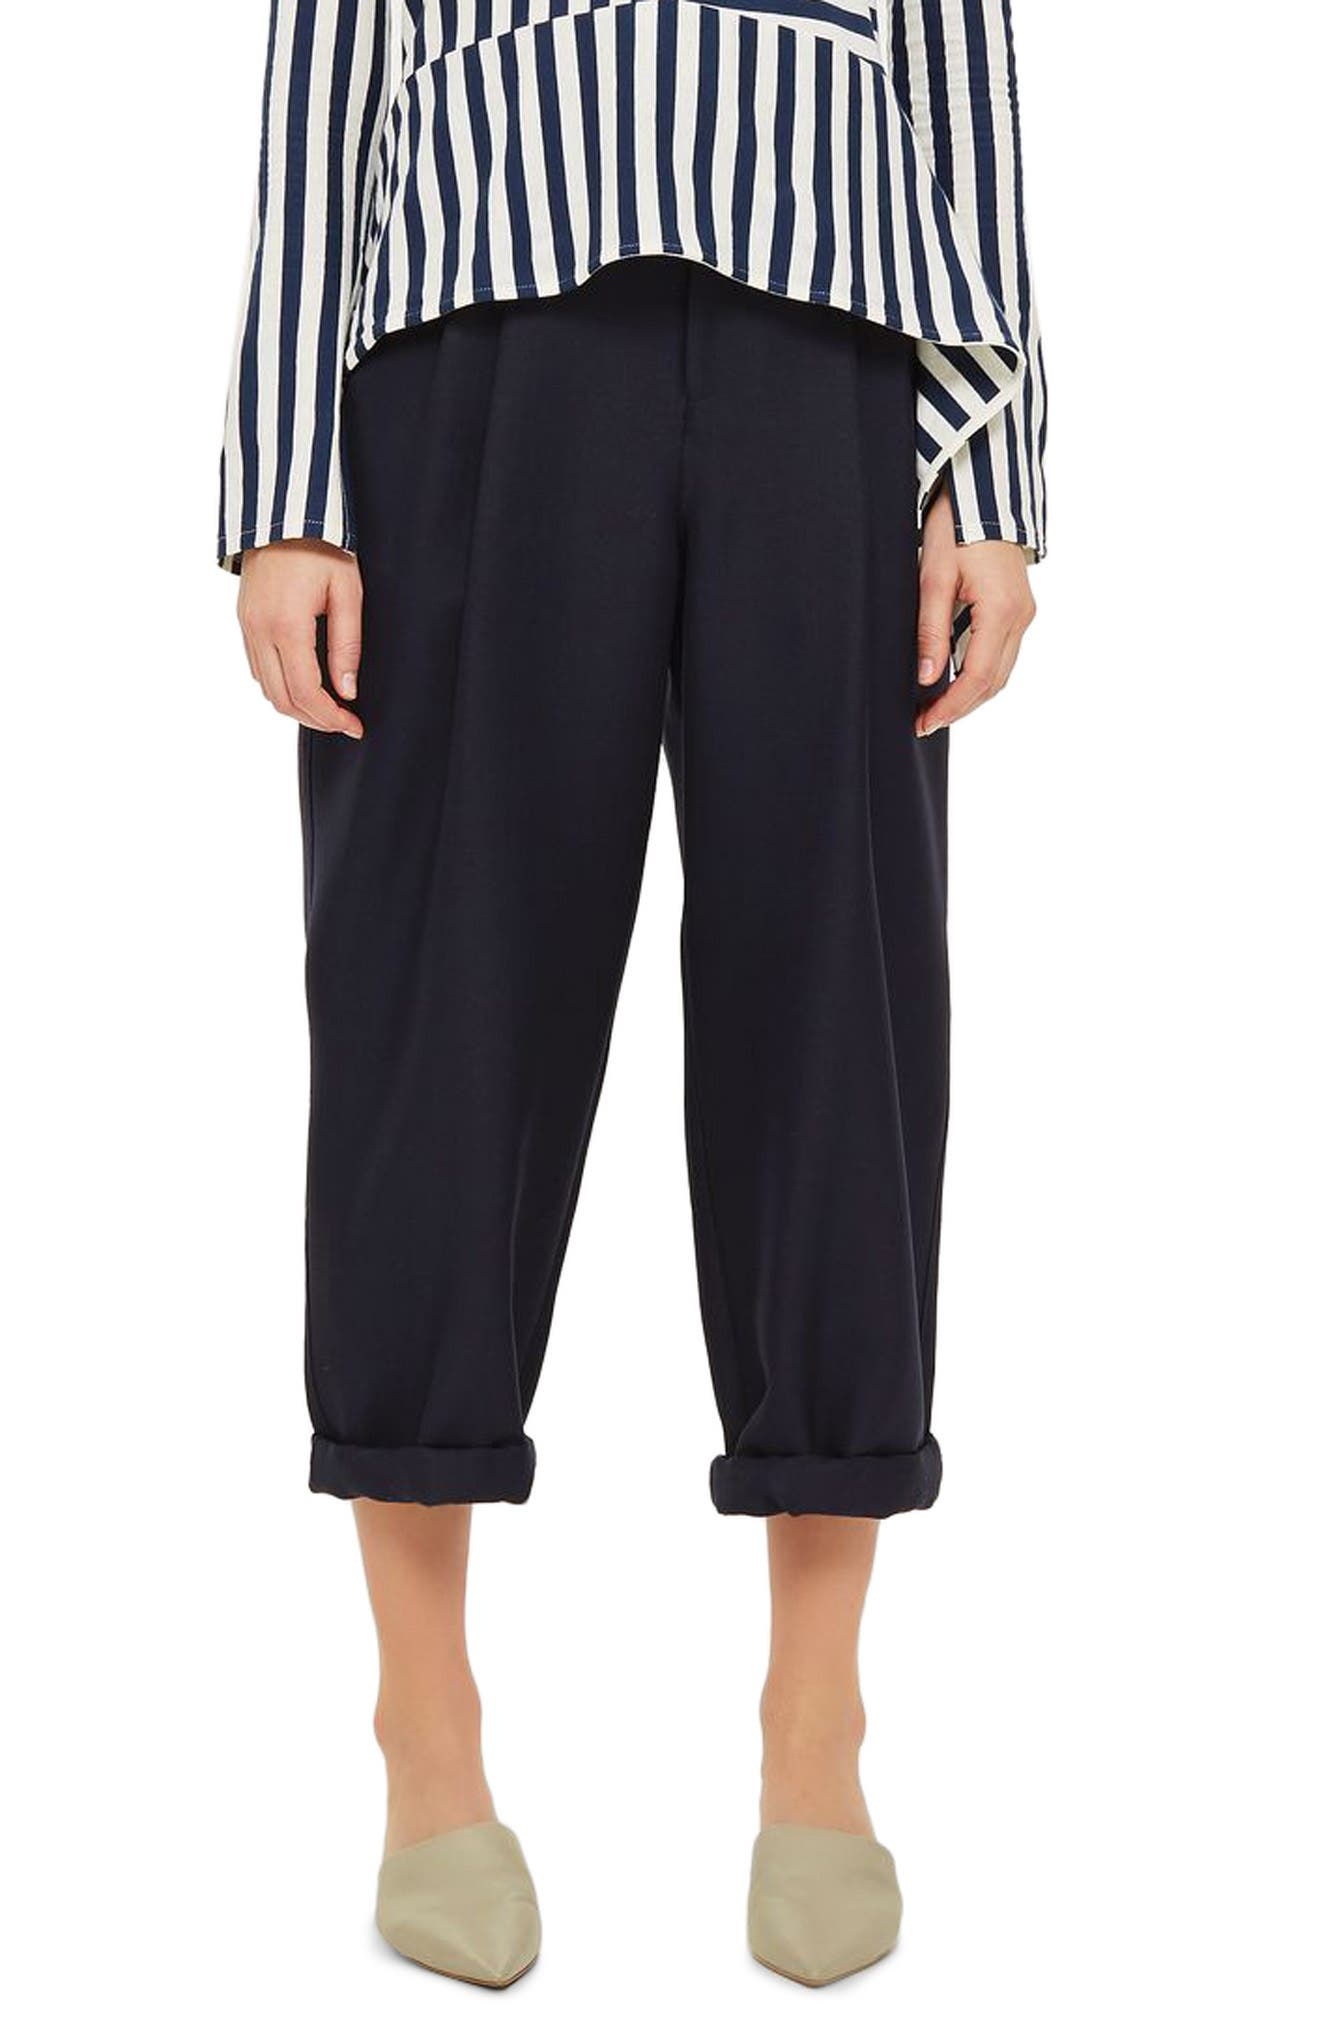 Nords Mensy Trousers,                         Main,                         color,